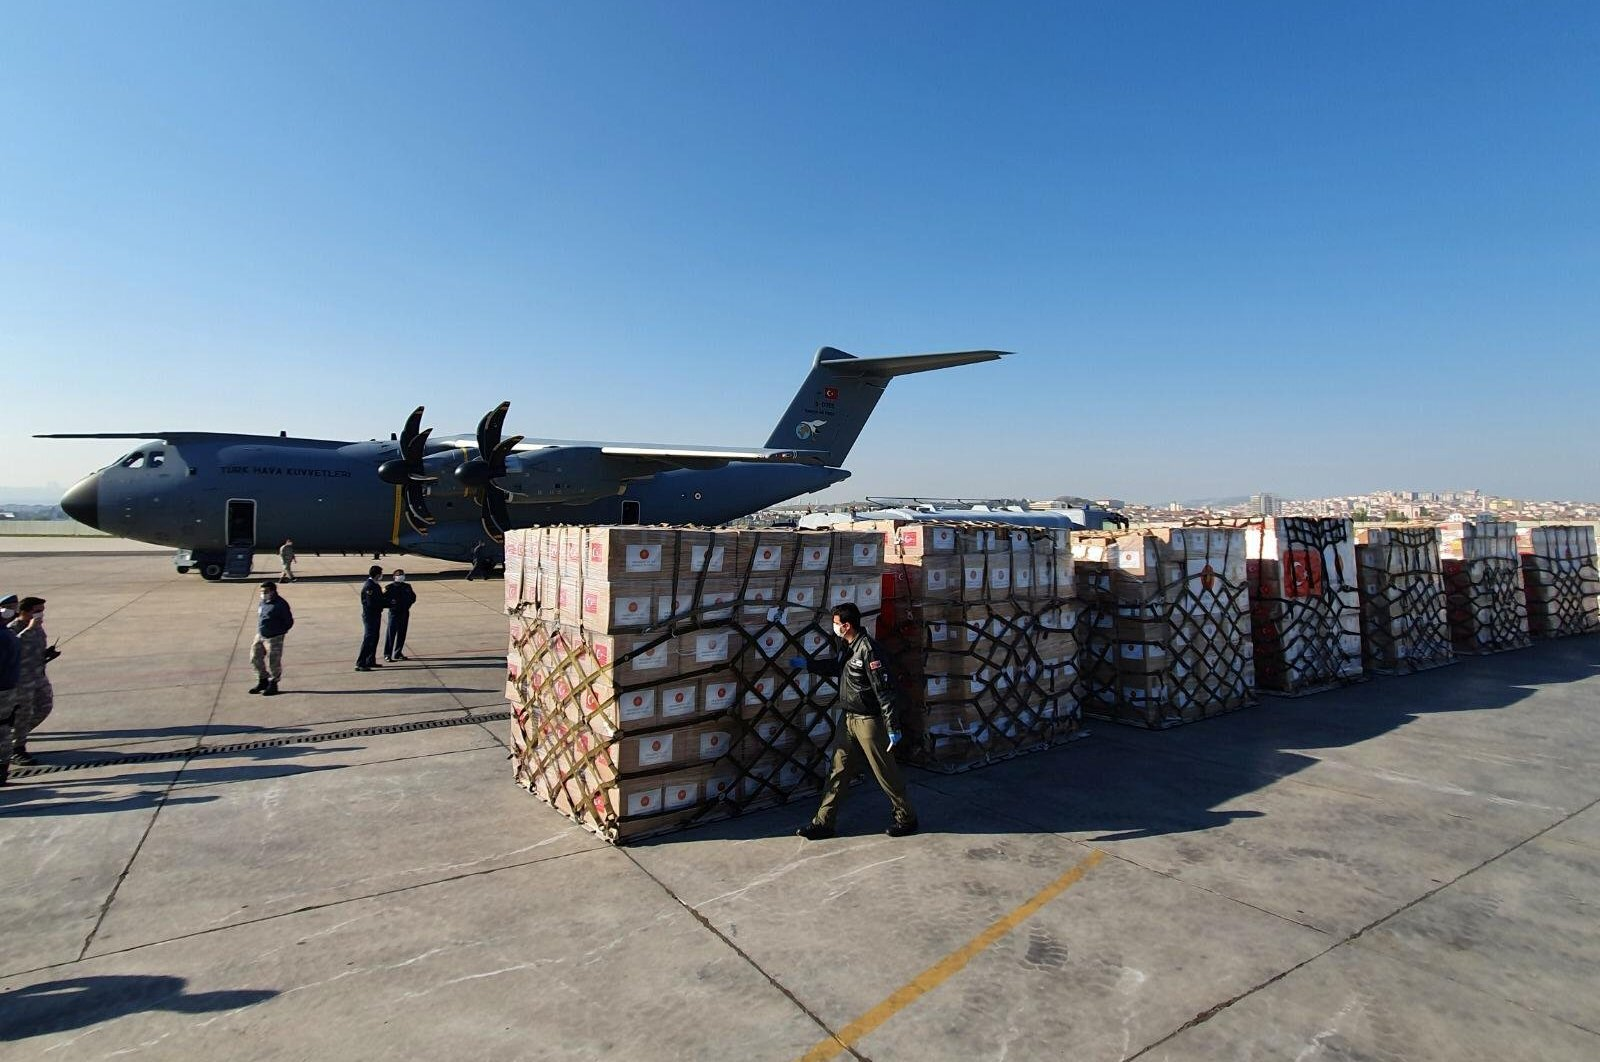 A Turkish military cargo plane and a shipment of medical supplies, part of a major aid campaign by Turkey which has dispatched supplies to dozens of countries since the coronavirus pandemic erupted, are seen at Etimesgut airport before departing for the United States, Ankara, April 28, 2020. (REUTERS Photo)